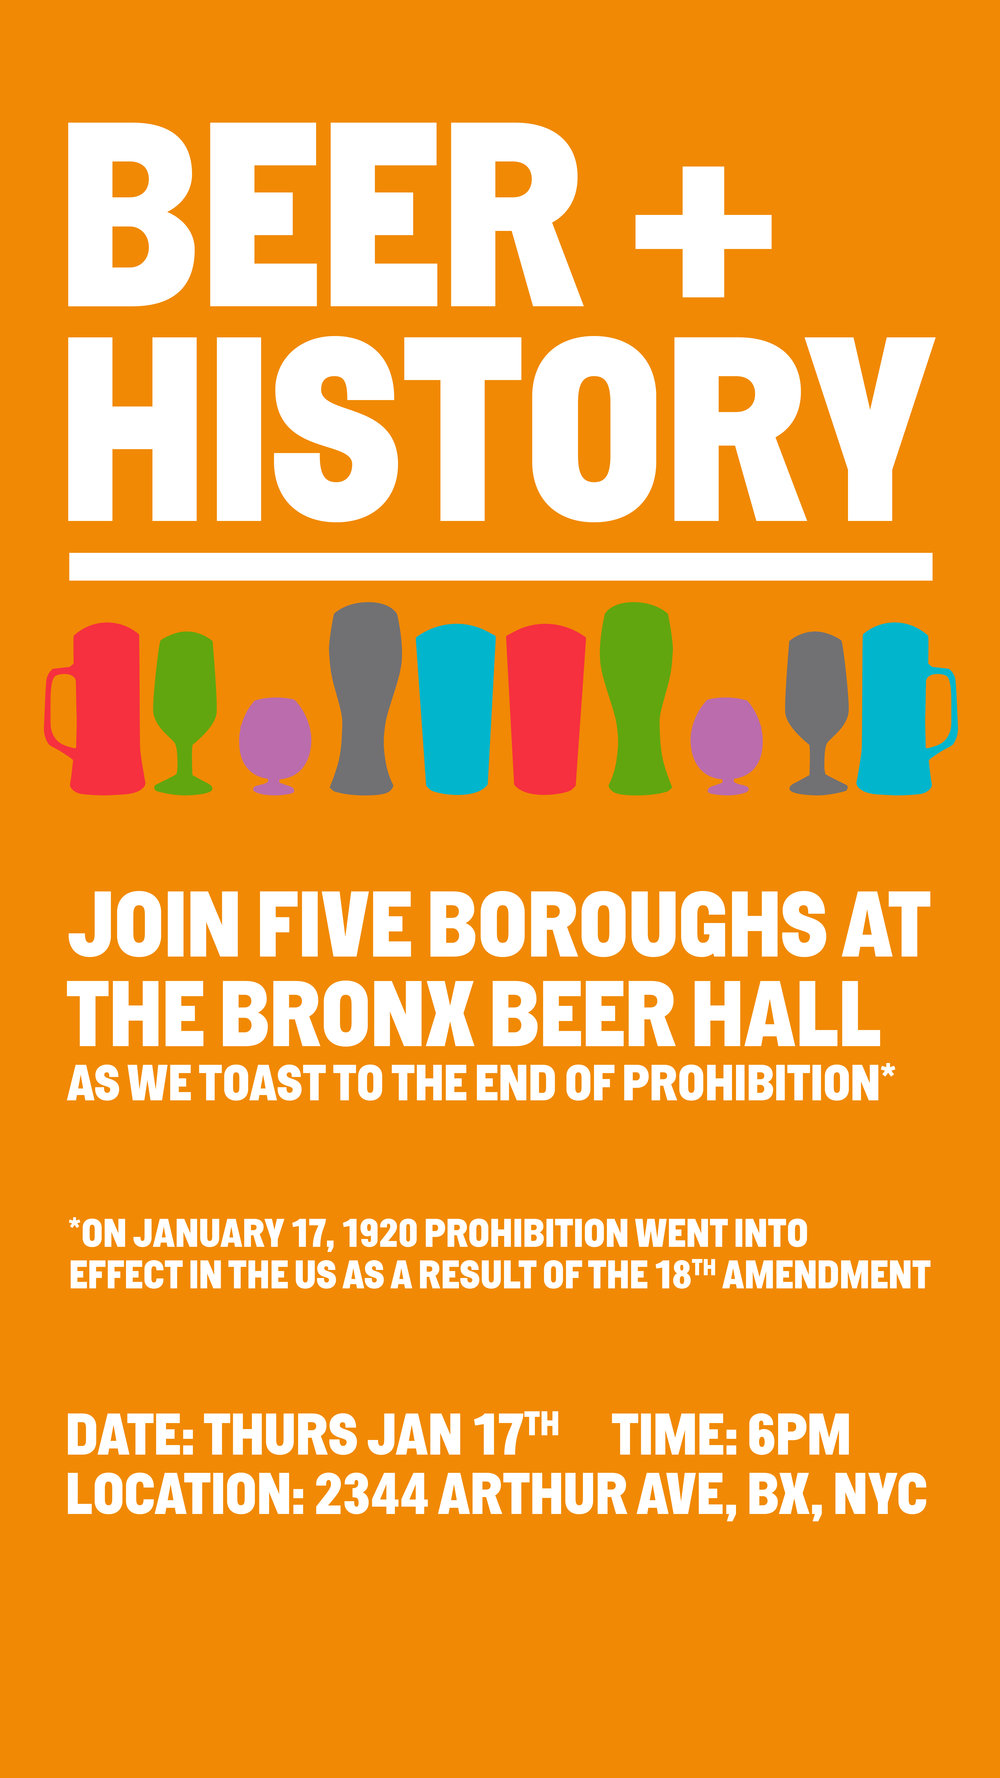 IG Story - Bronx Beer Hall and Five Boroughs-01.jpg